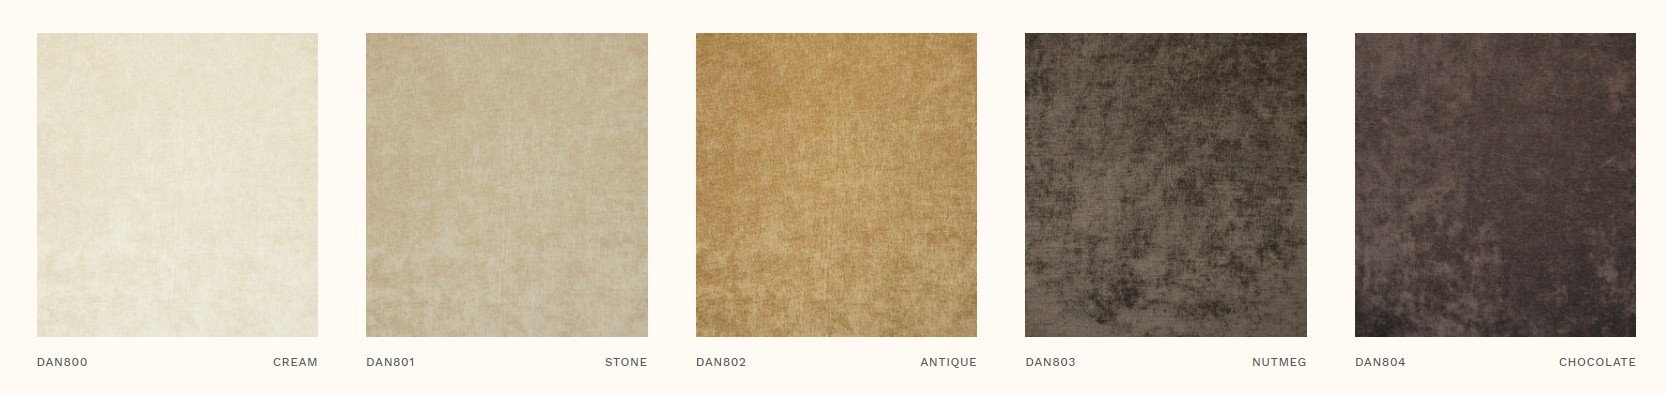 Danza Fabric Guide 1